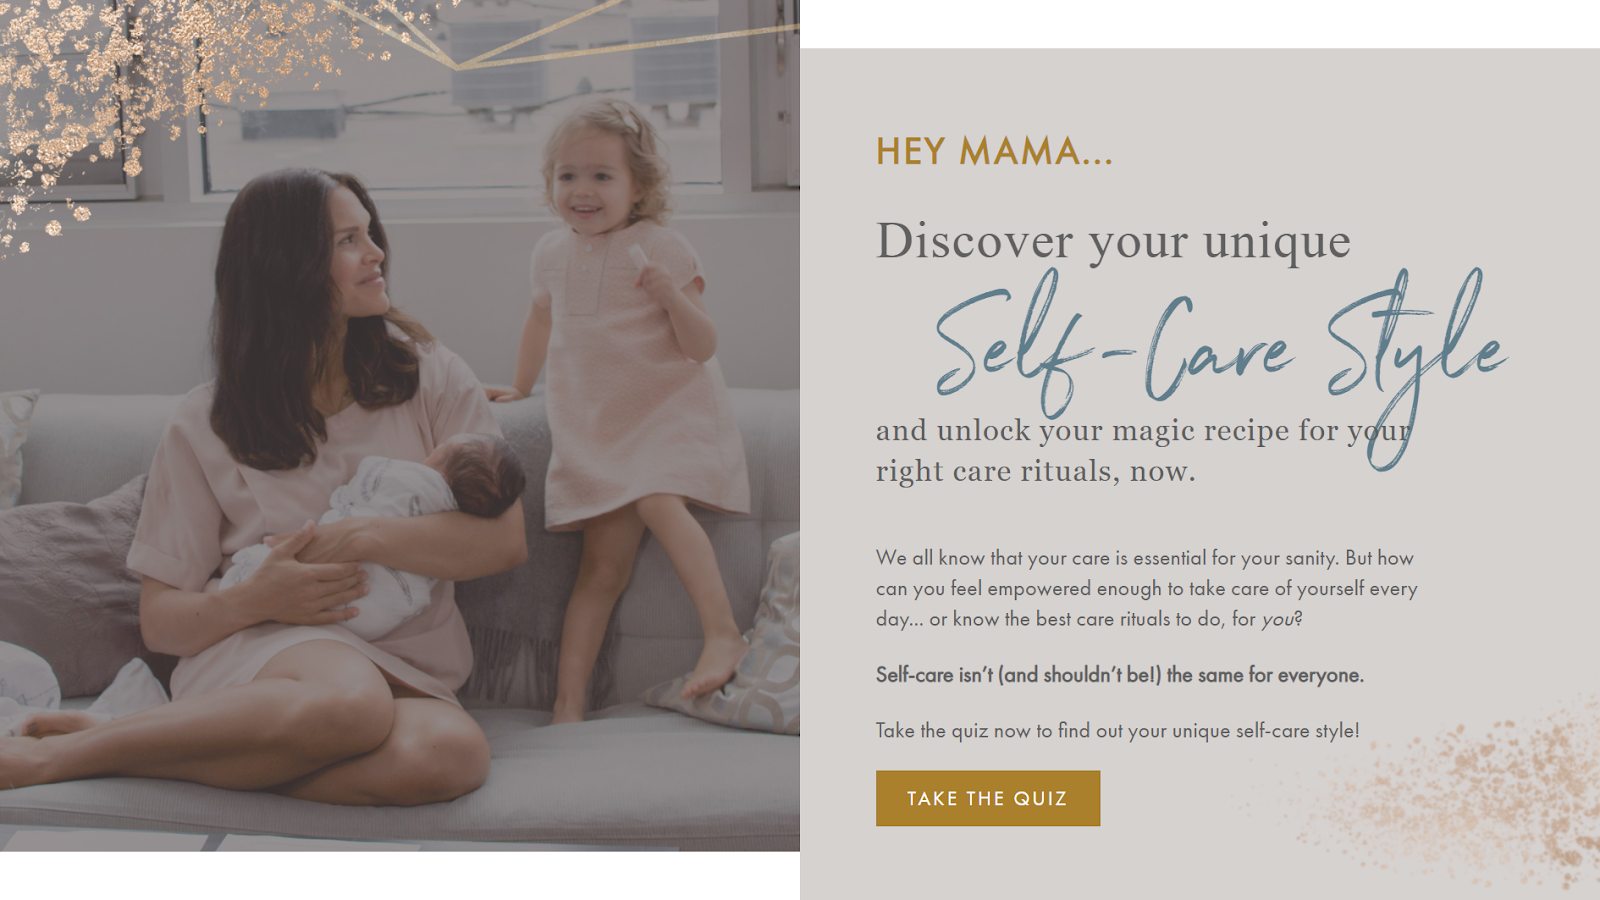 self-care style quiz landing page